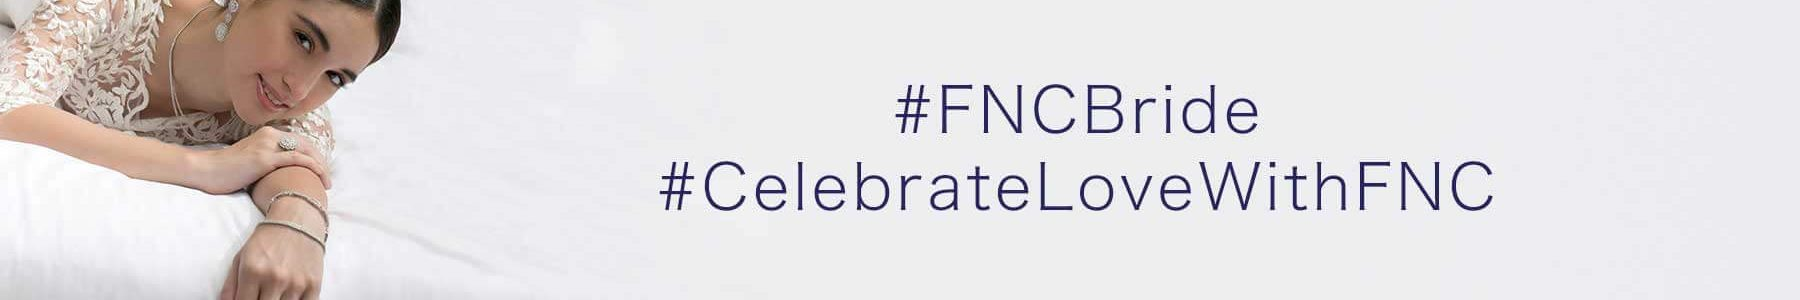 Celebrate Love WIth FNC